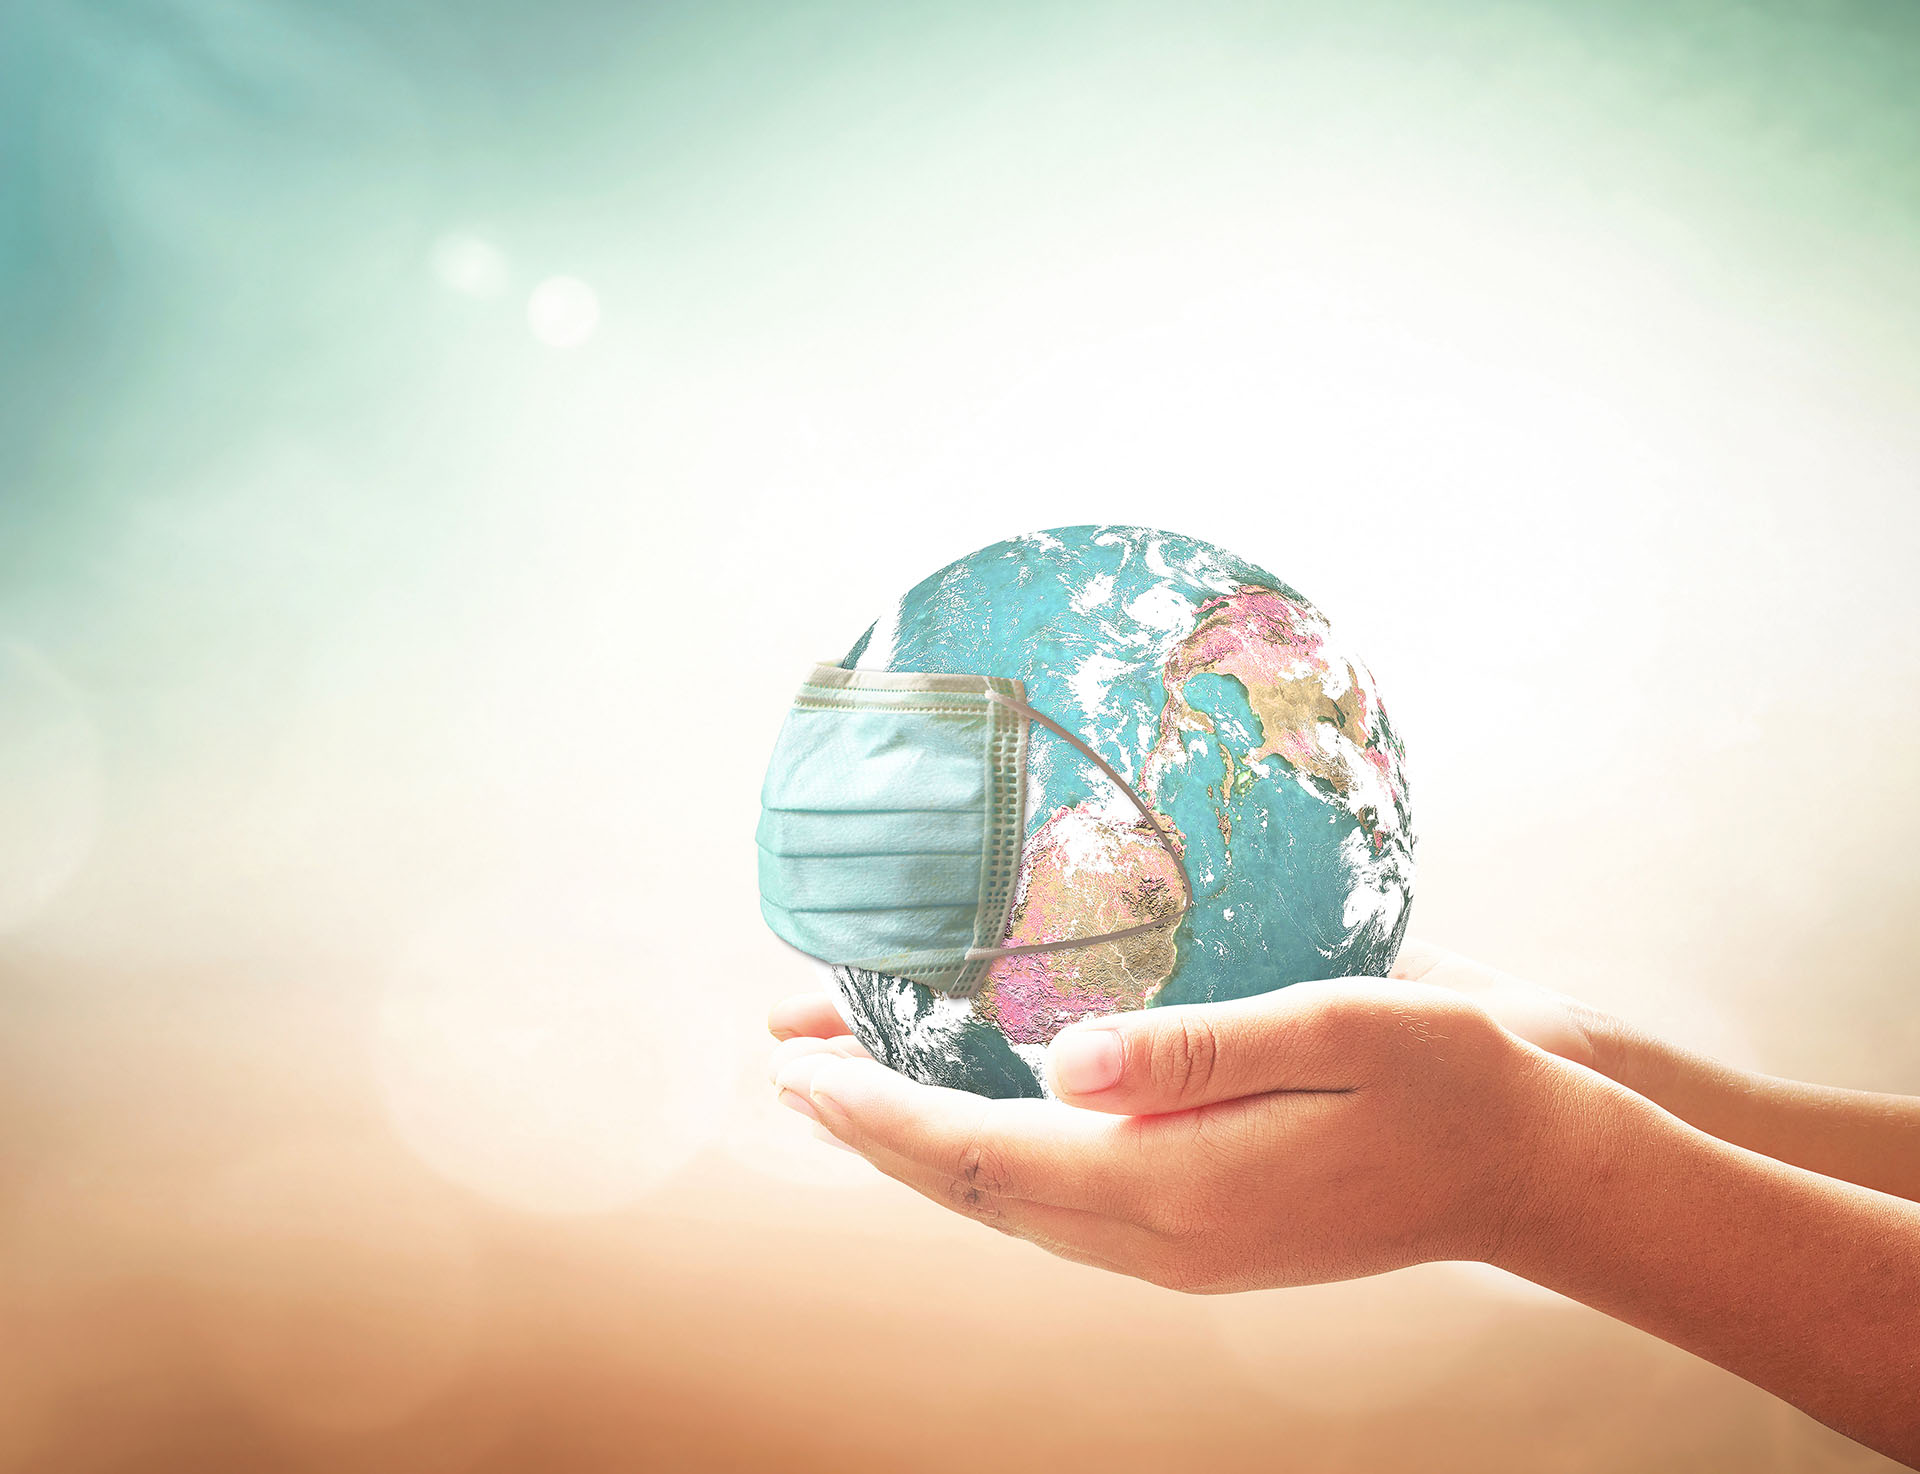 Person holding the world in their hands.